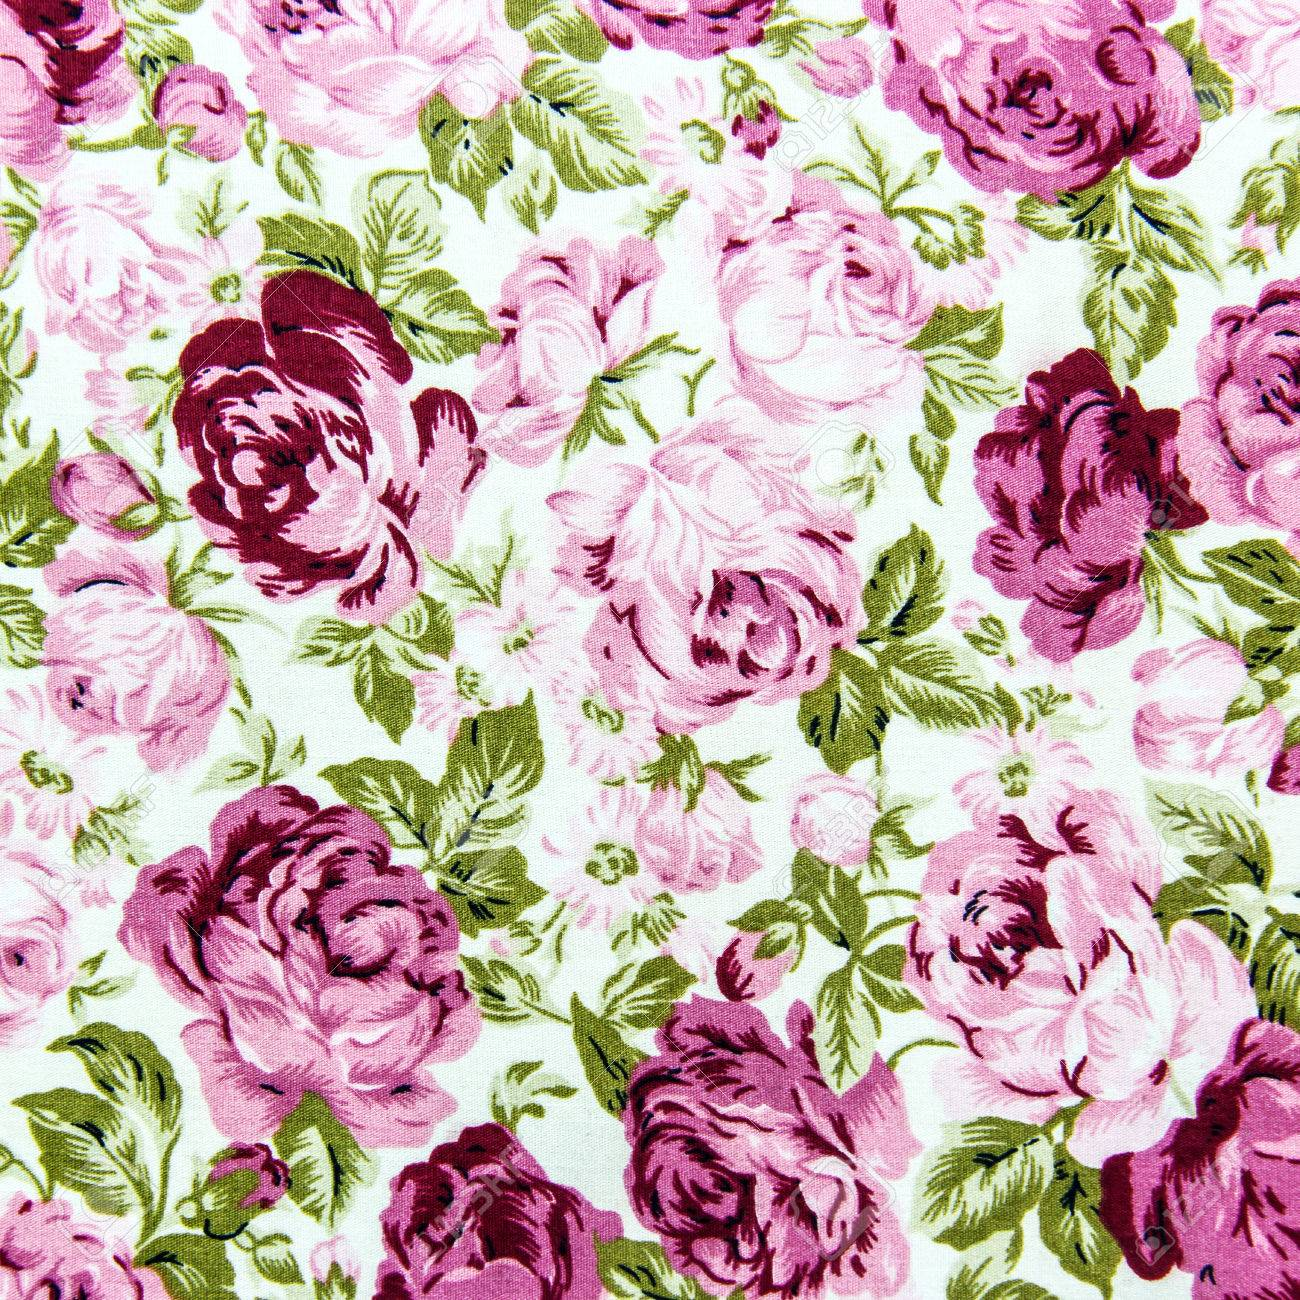 Latest Photo Rose Fabric Hintergrund Fragment Von Bunten Retro Teppich Textile Muster Mit Floralen Ornament N Tzl With Rosen